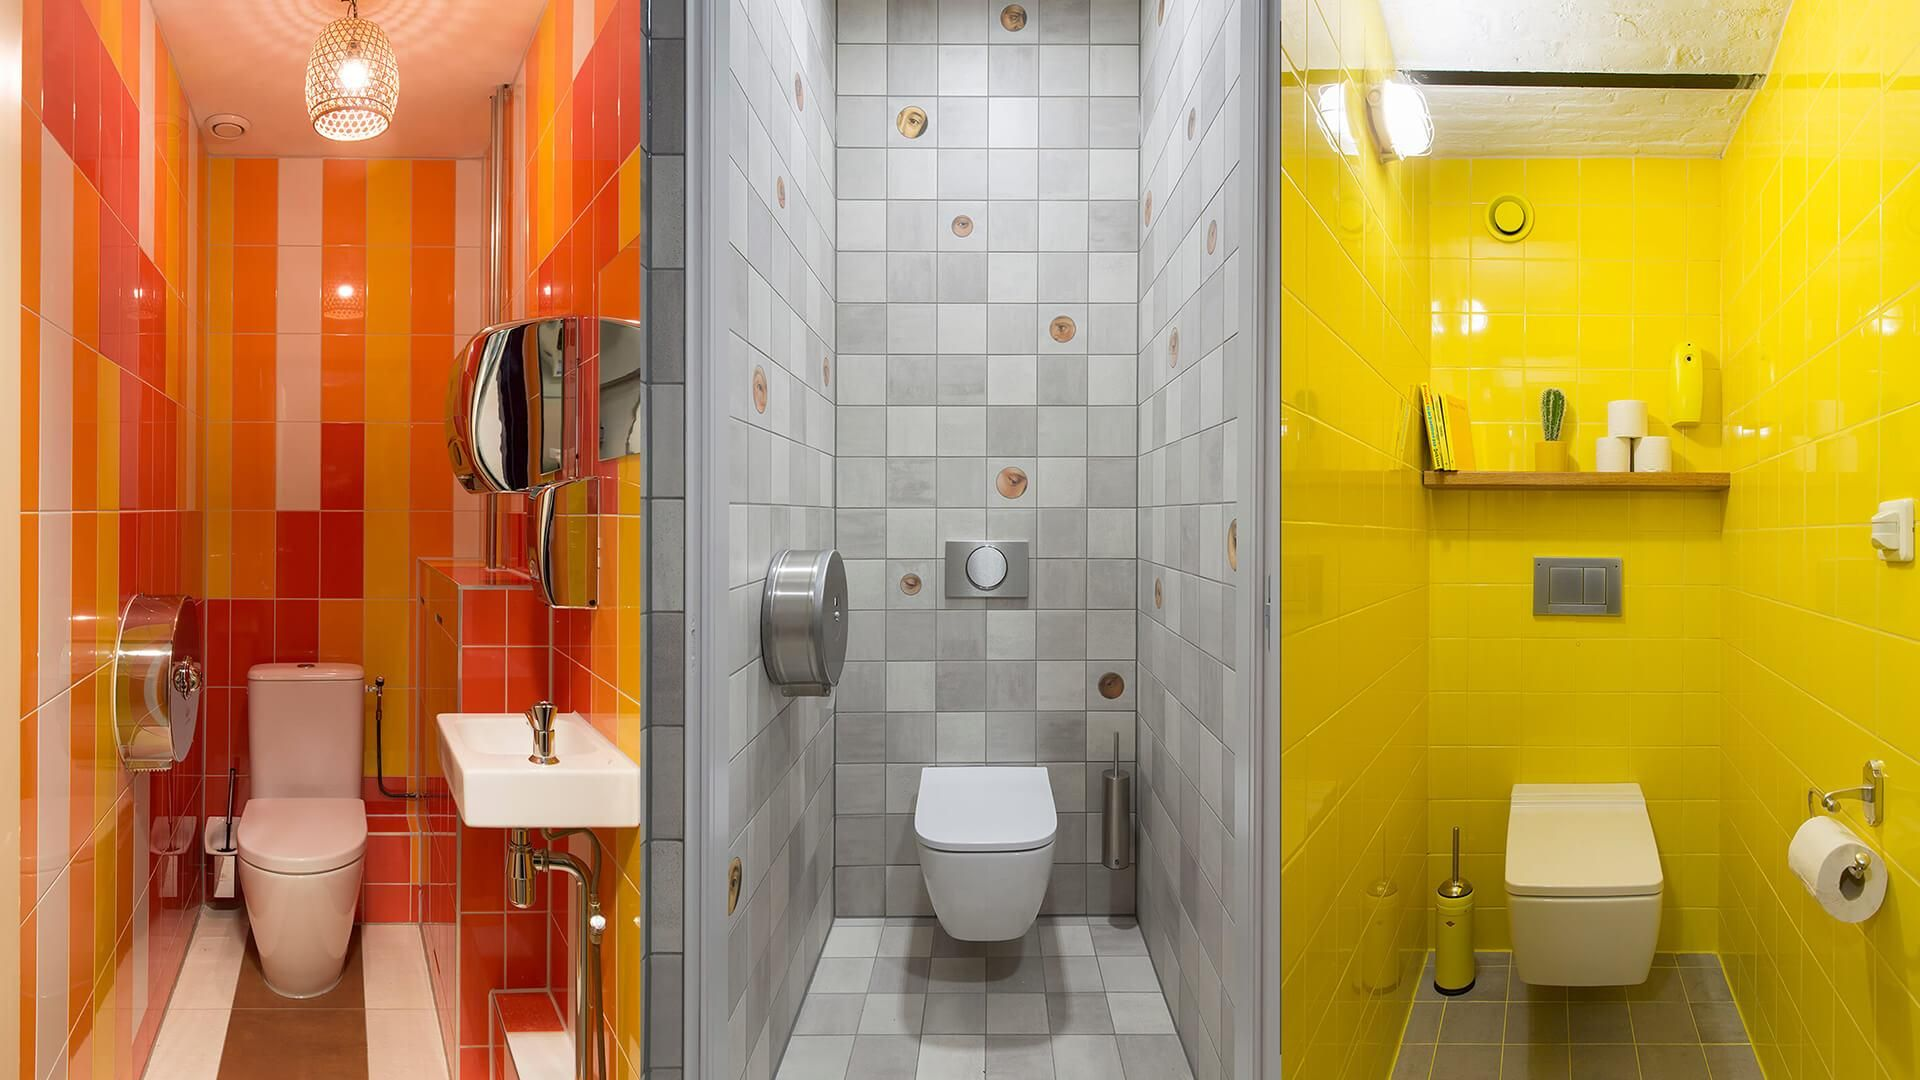 Toilet Transformation Students Redesign Bathrooms With